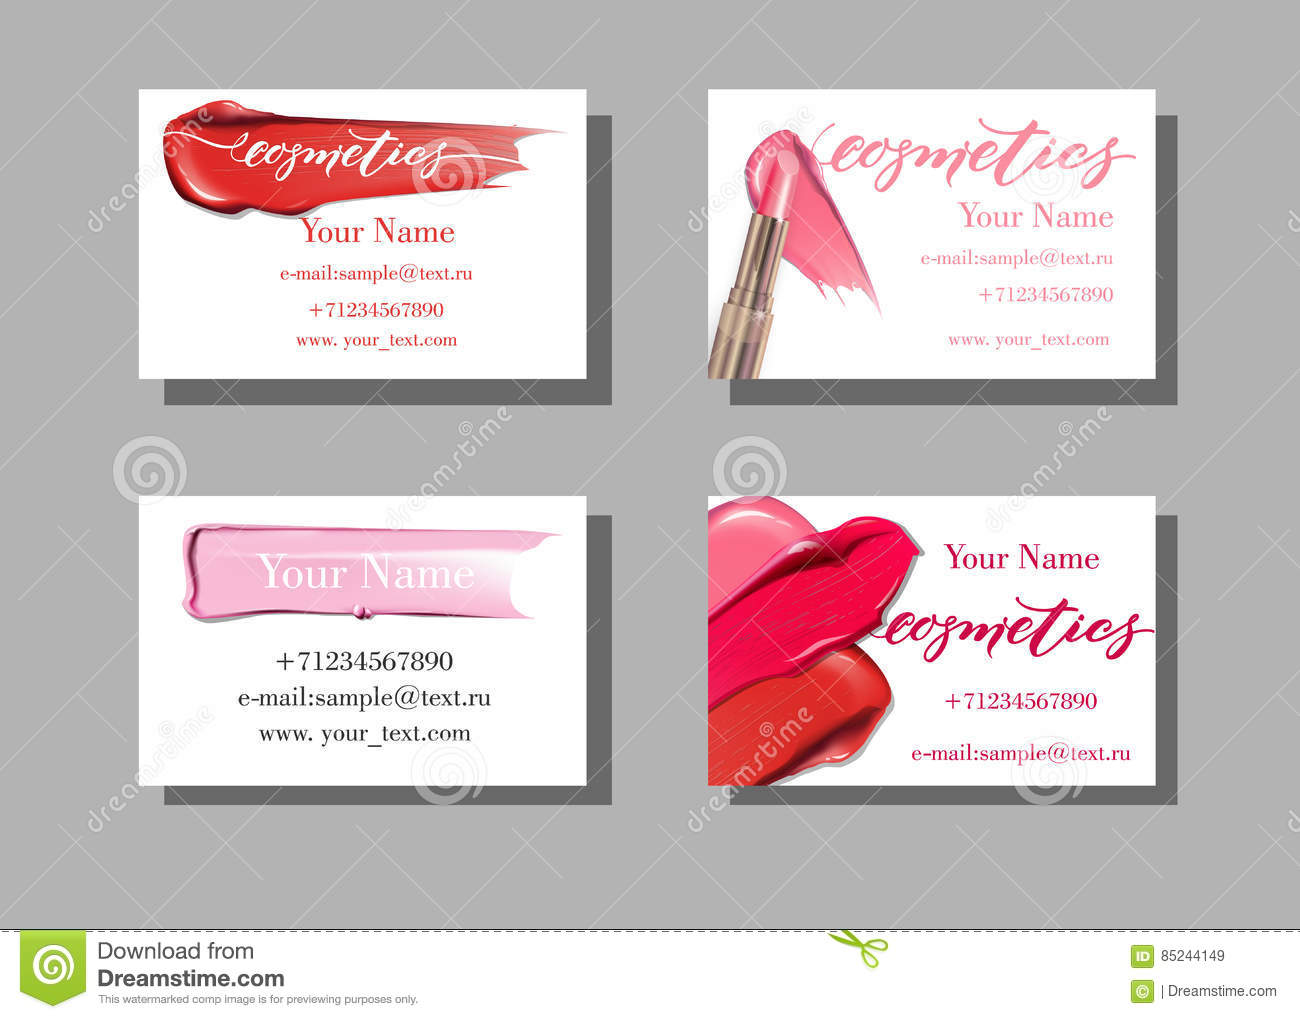 Makeup artist business card vector template with makeup items makeup artist business card vector template with makeup items pattern smears lipstick cheaphphosting